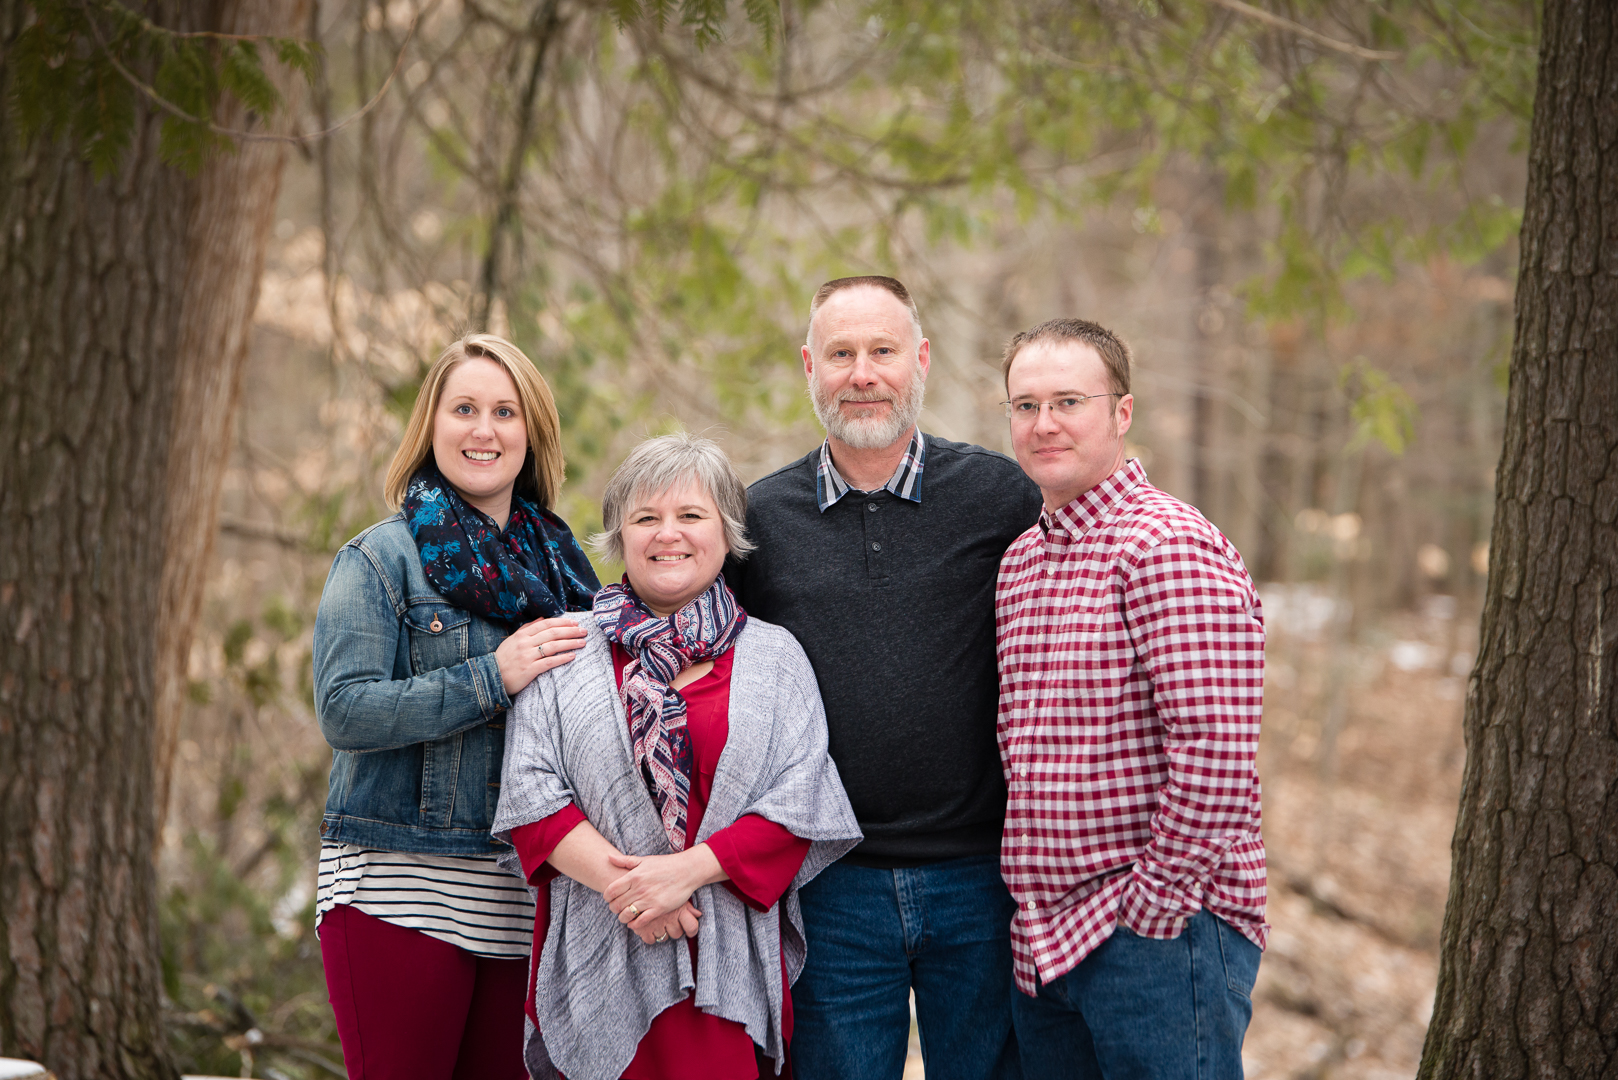 Naomi Lucienne Photography - Family - 170318242.jpg